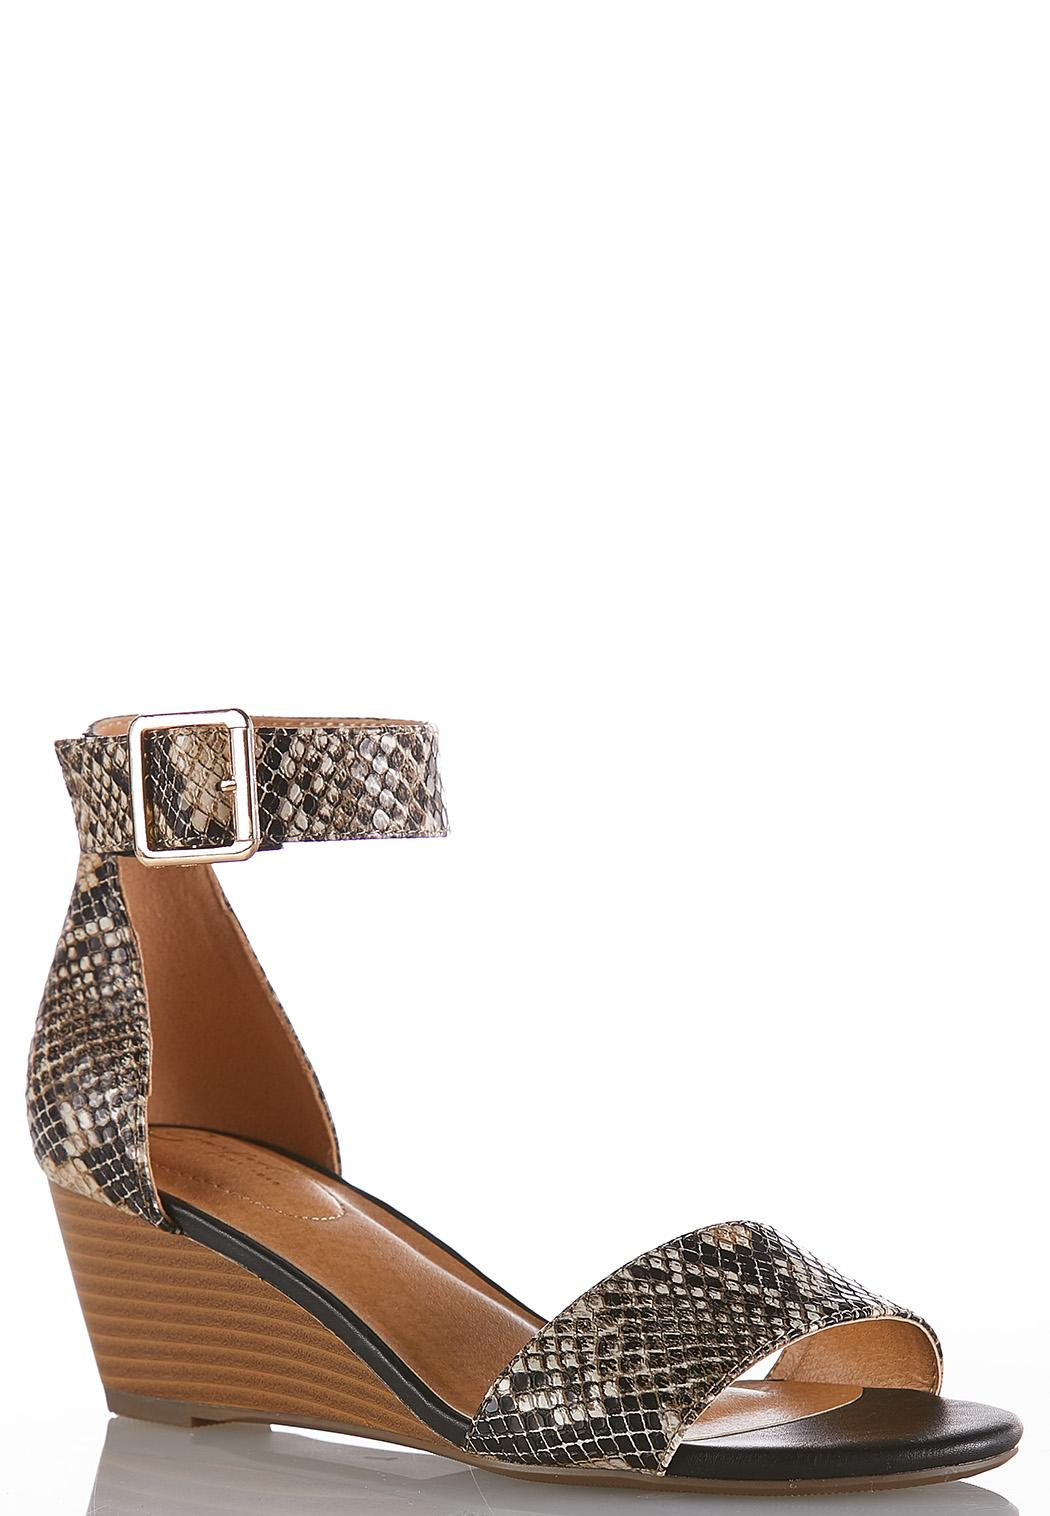 5c5203161cd Wide Width Snakeskin Wedge Sandals Wide Width Cato Fashions